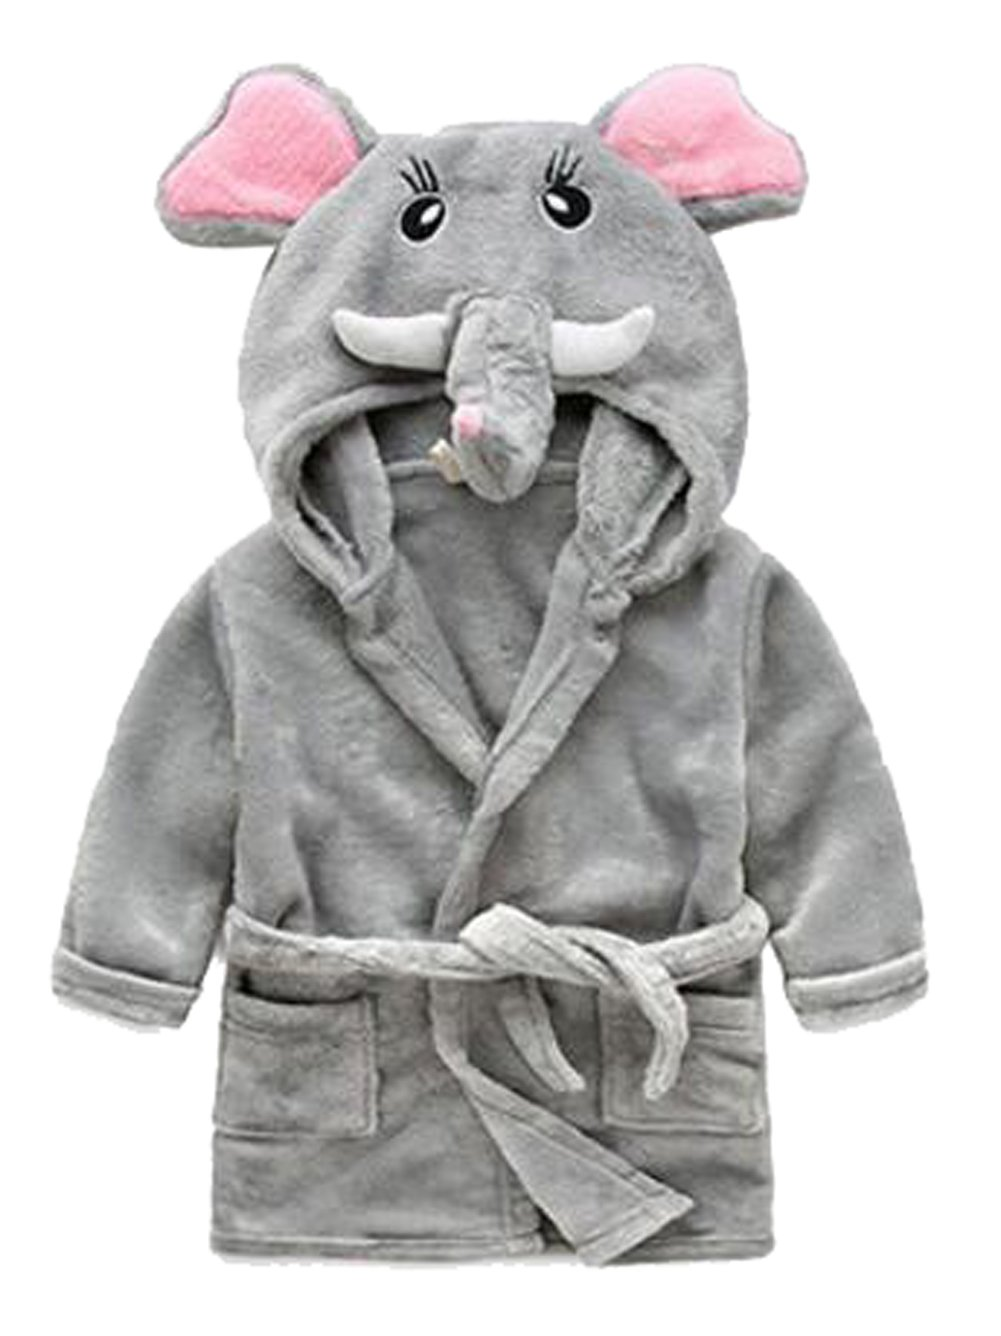 Image of Gray Elephant Robe For Toddler Boys - See More Animal Robes